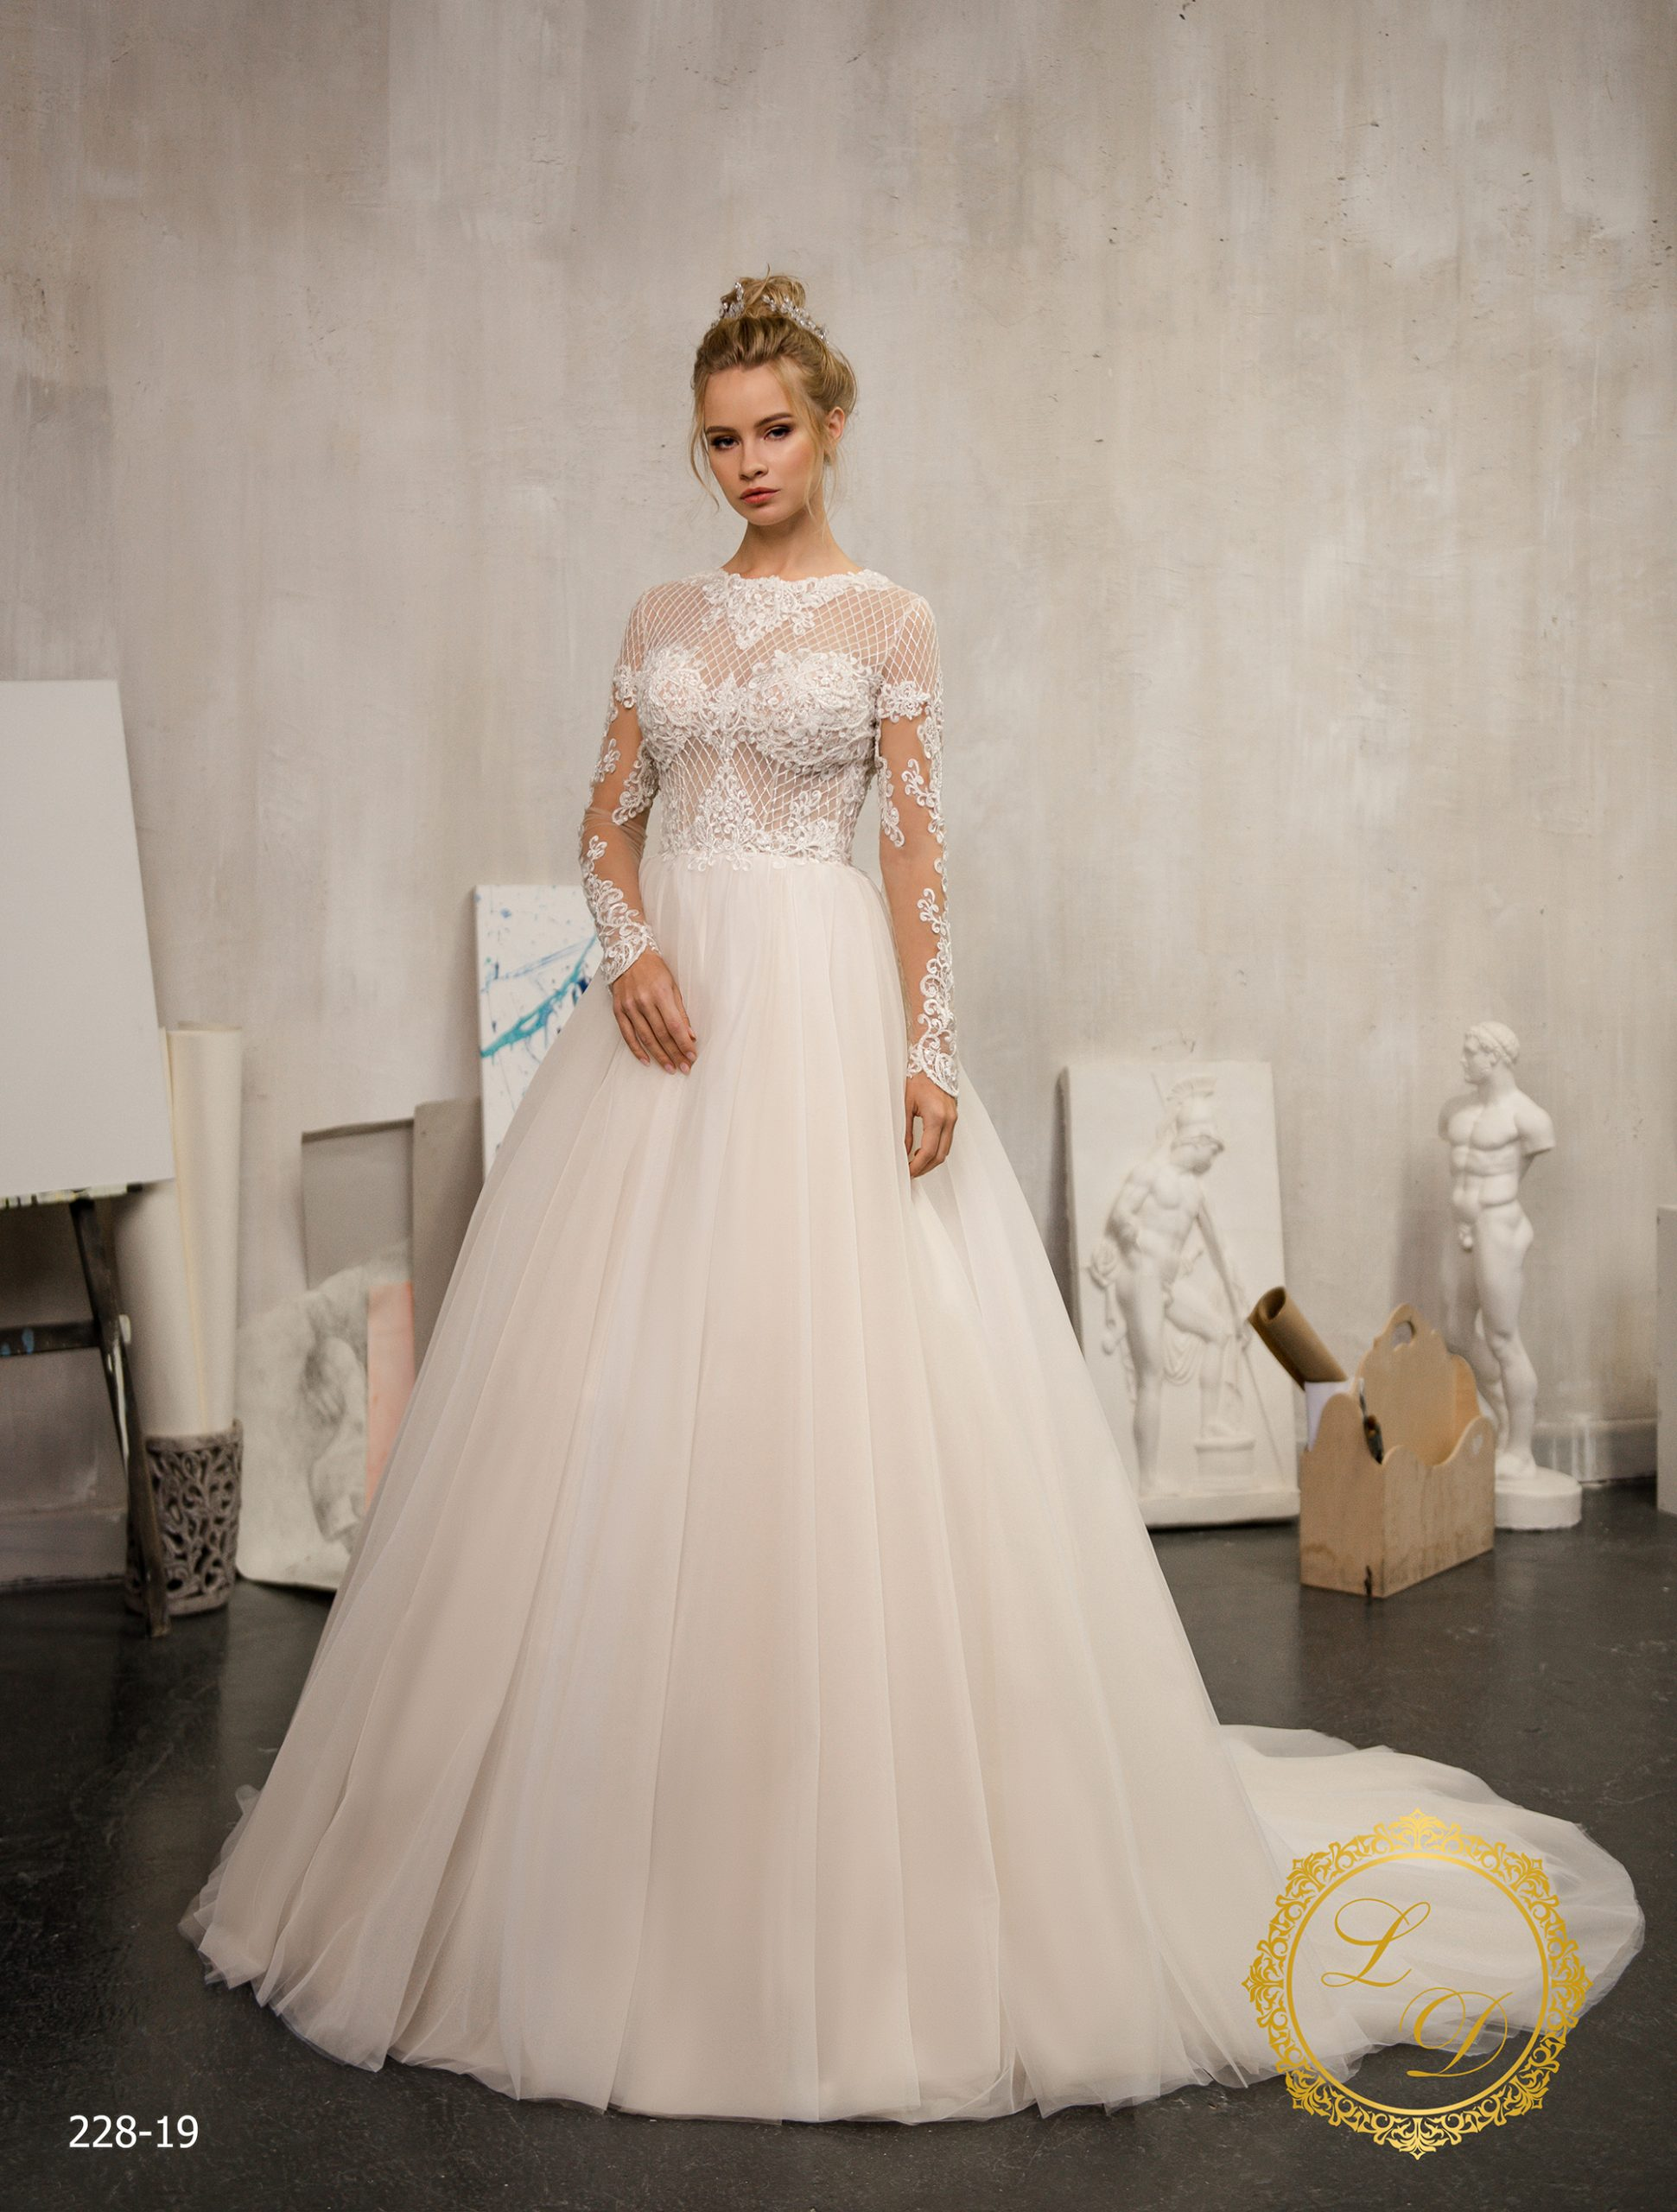 wedding-dress-228-19-1